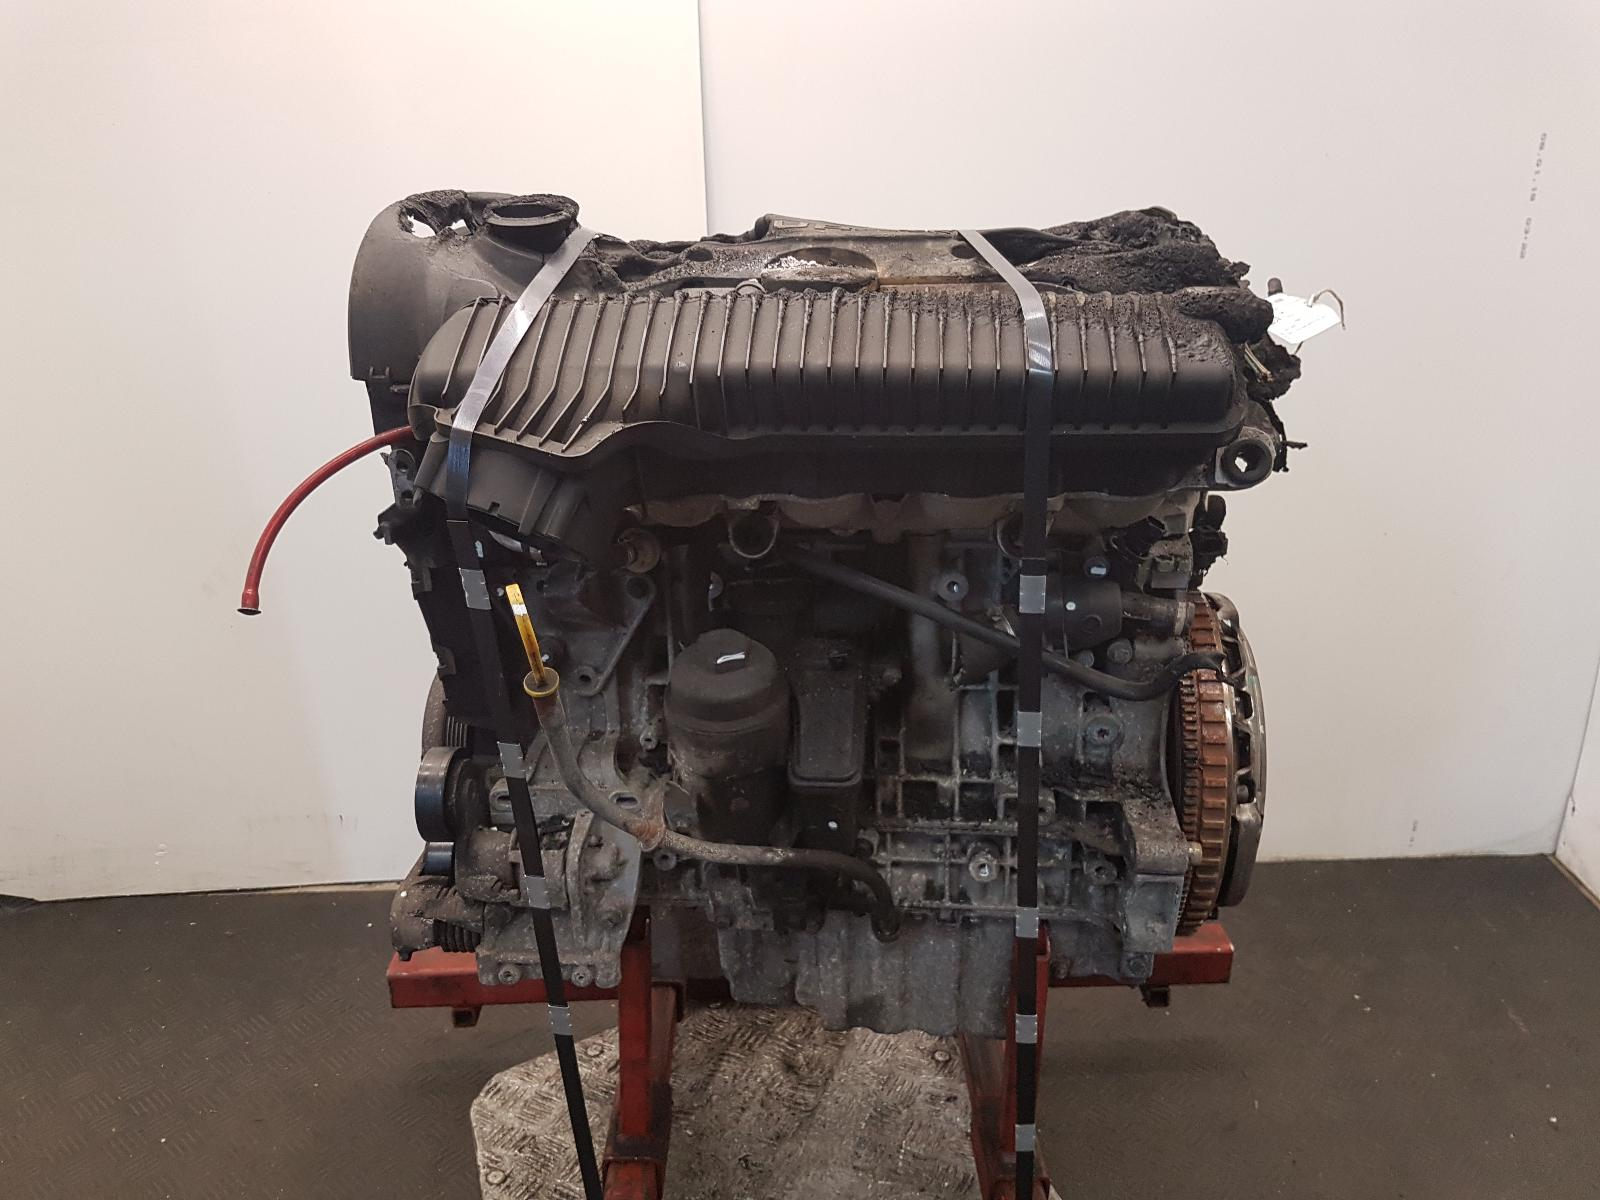 Image for a 2009 Ford Focus 2.5 Petrol HYDA Engine